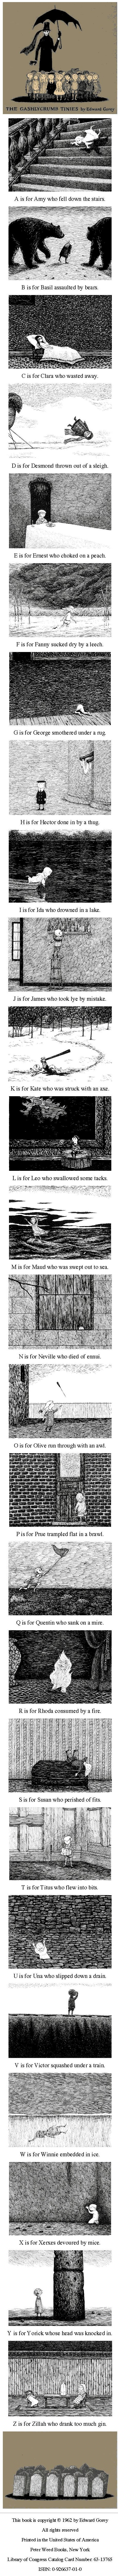 The Gashlycrumb Tinies or, After the Outing, Edward Gorey, 1963